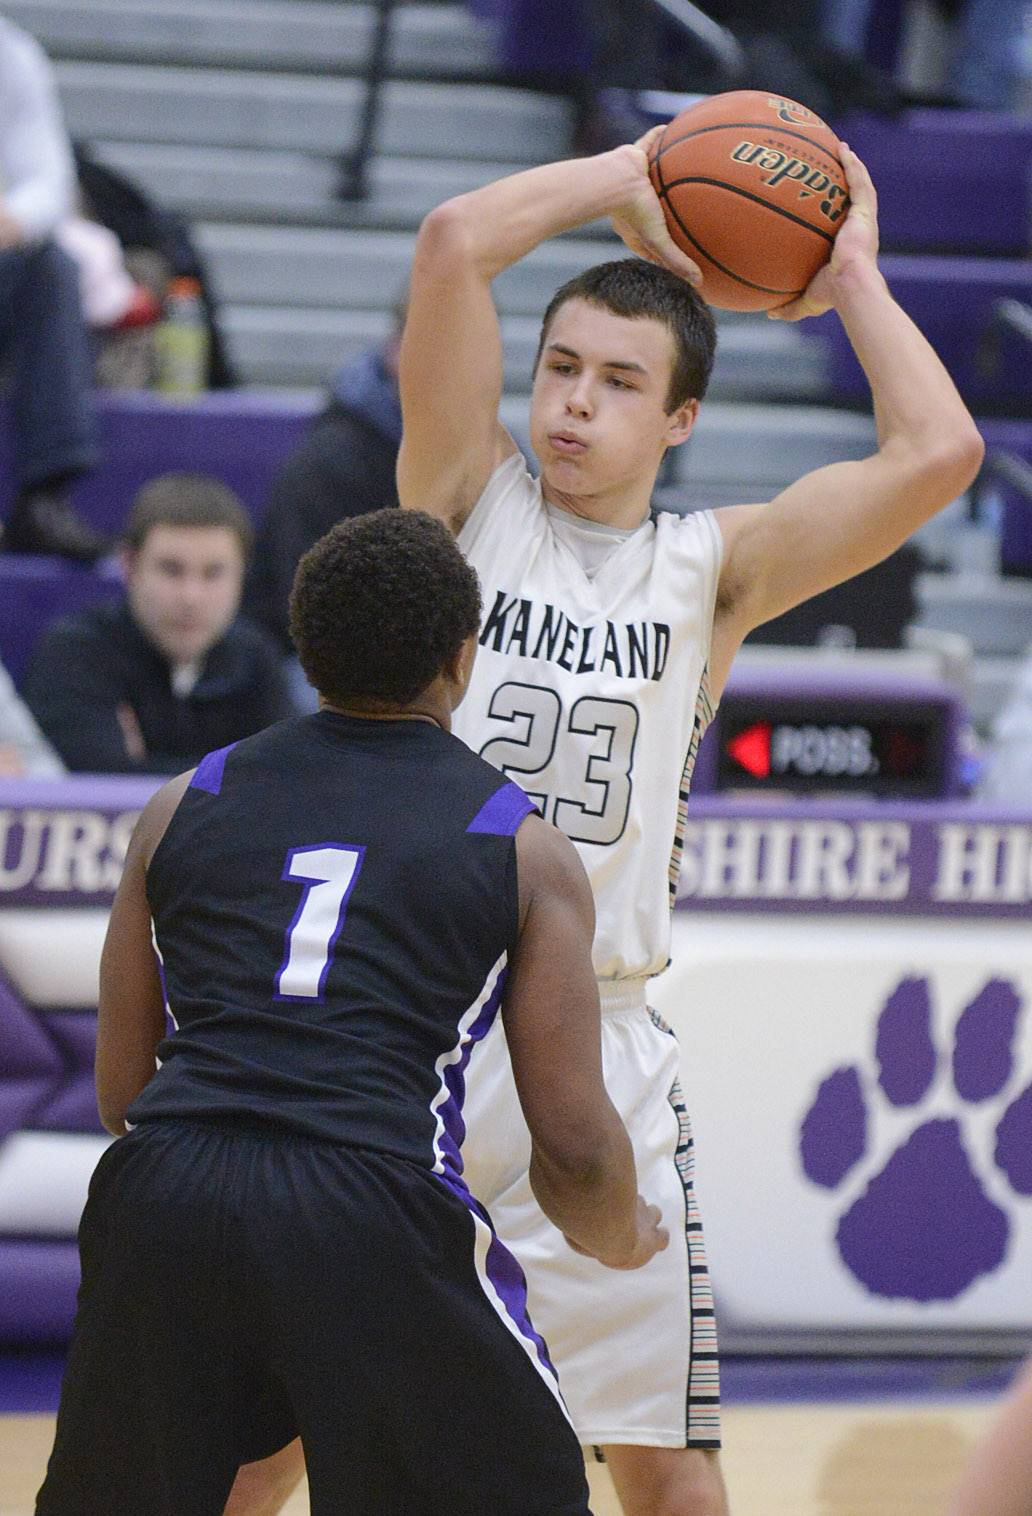 Kaneland's Tyler Carlson looks to pass over Rockford Lutheran's James Robinson in the third quarter.